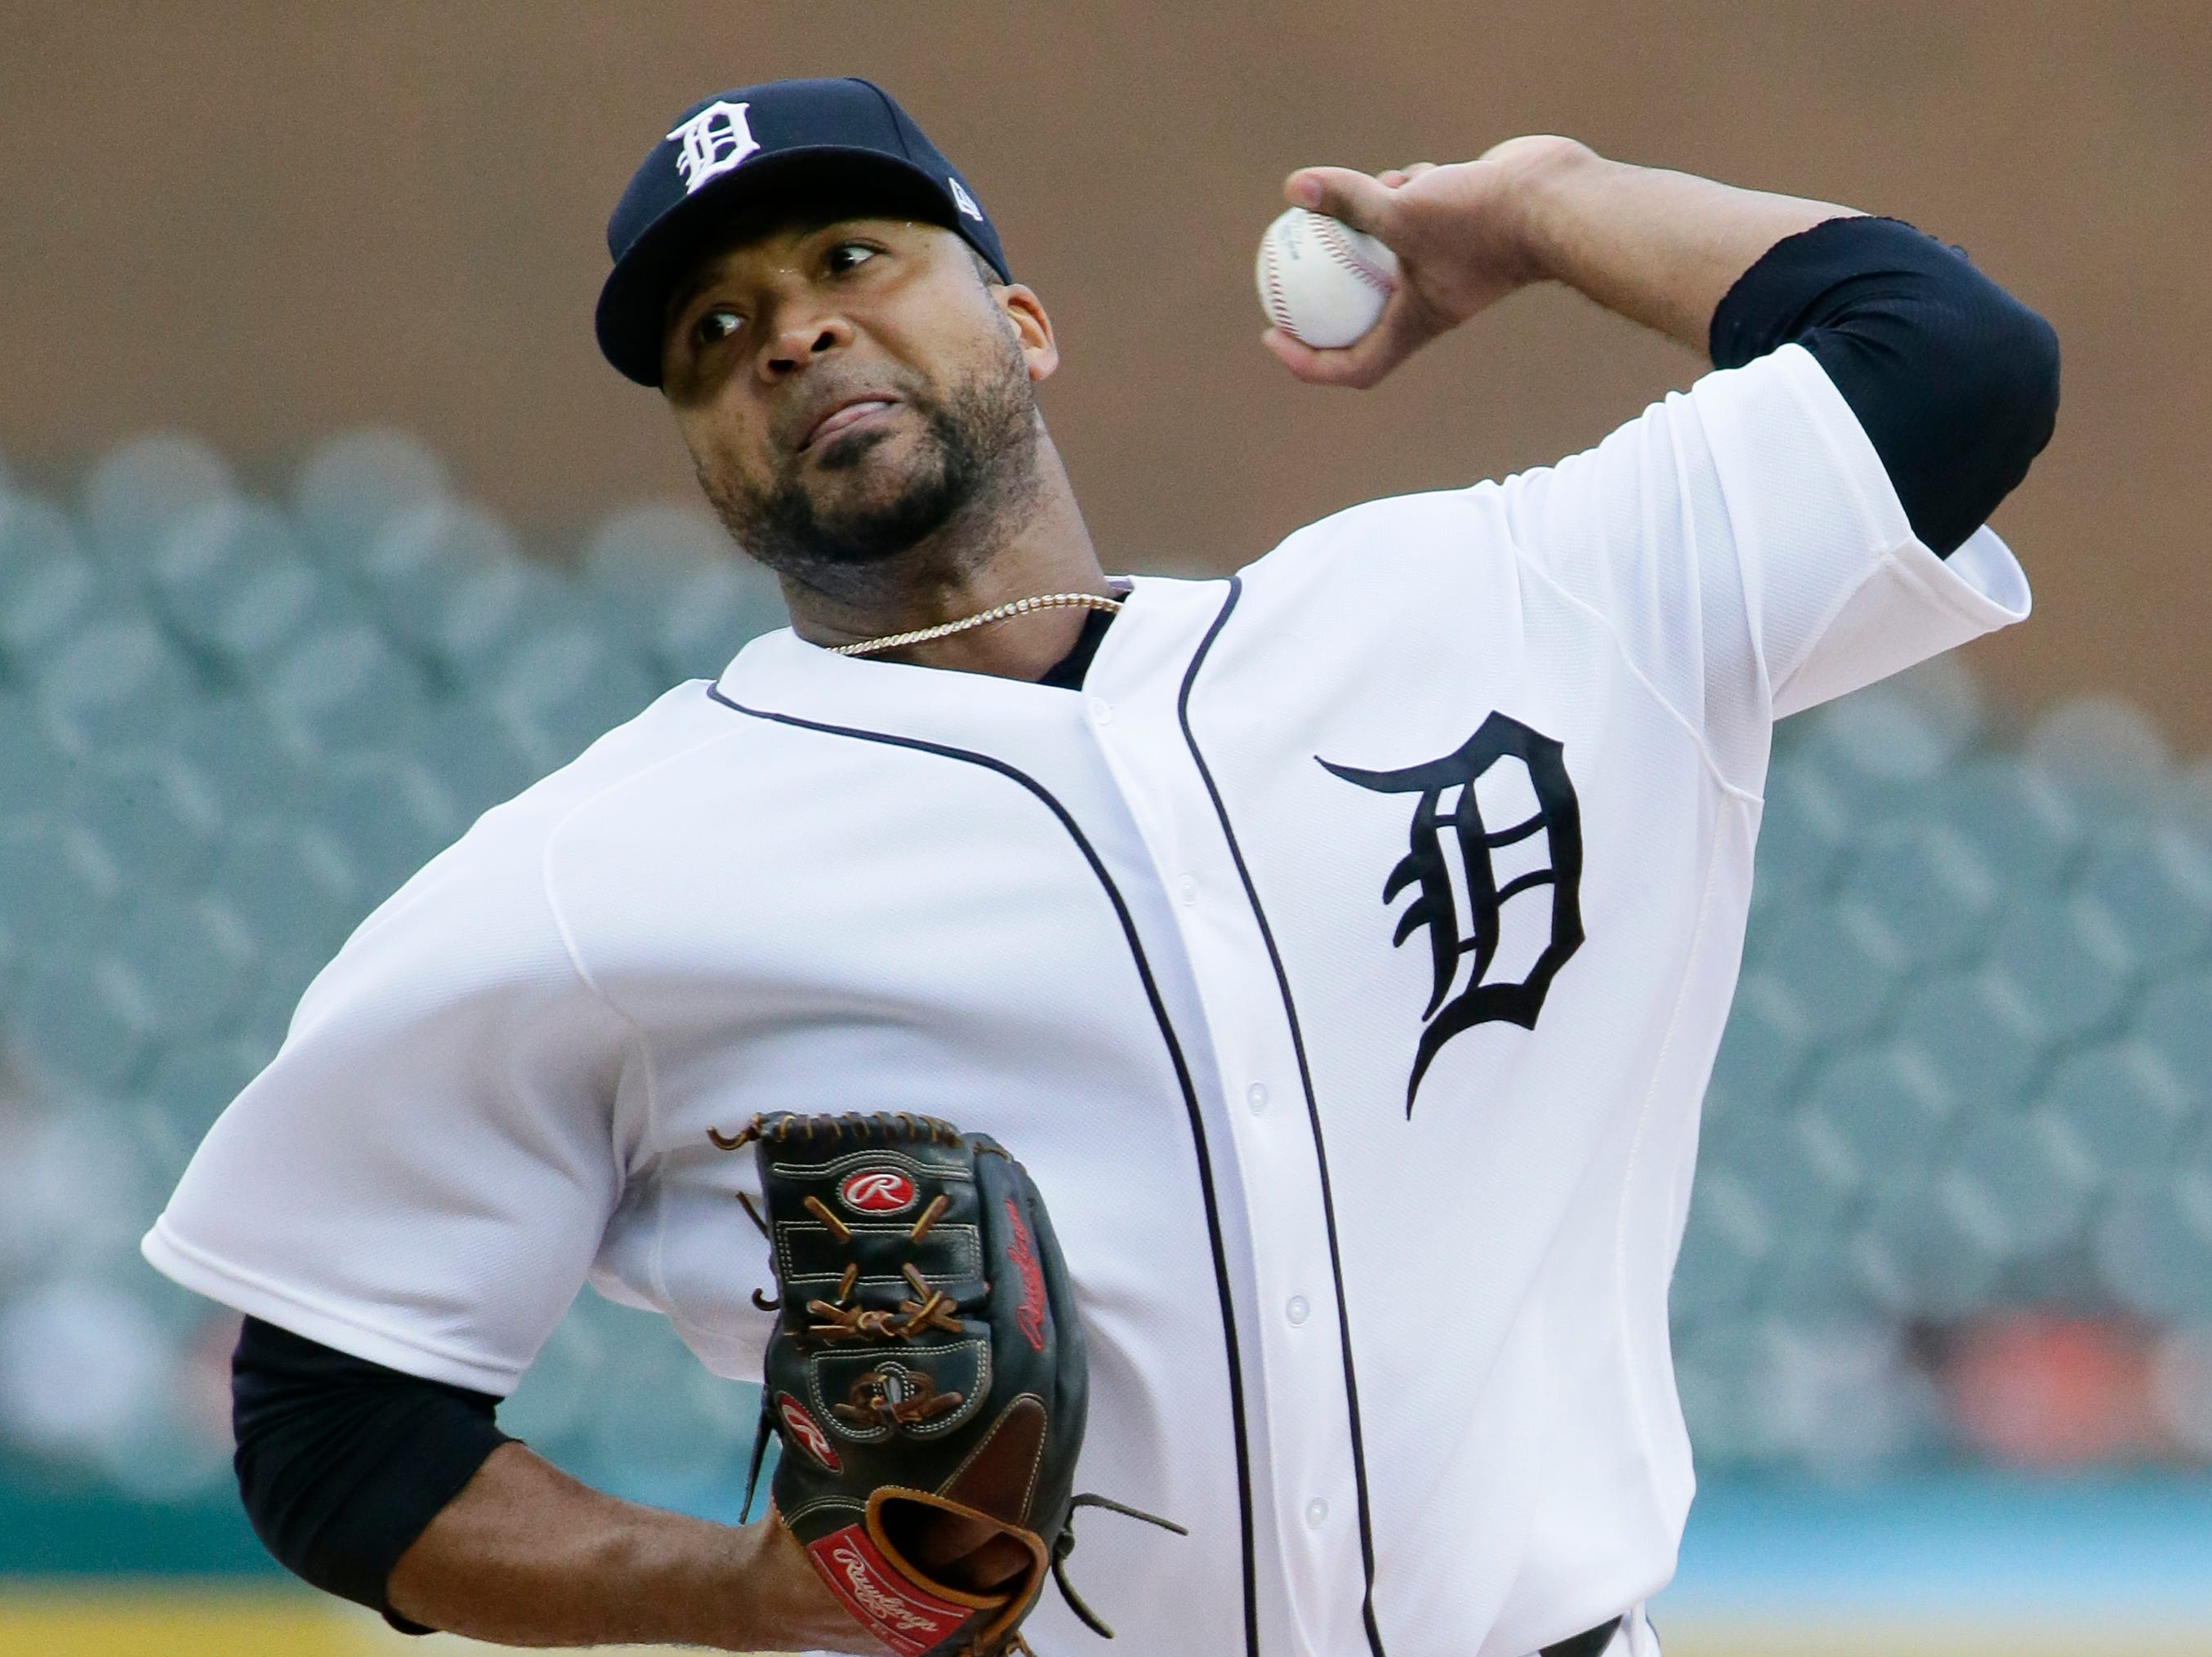 Detroit Tigers starting pitcher Francisco Liriano pitches against the Houston Astros during the second inning.